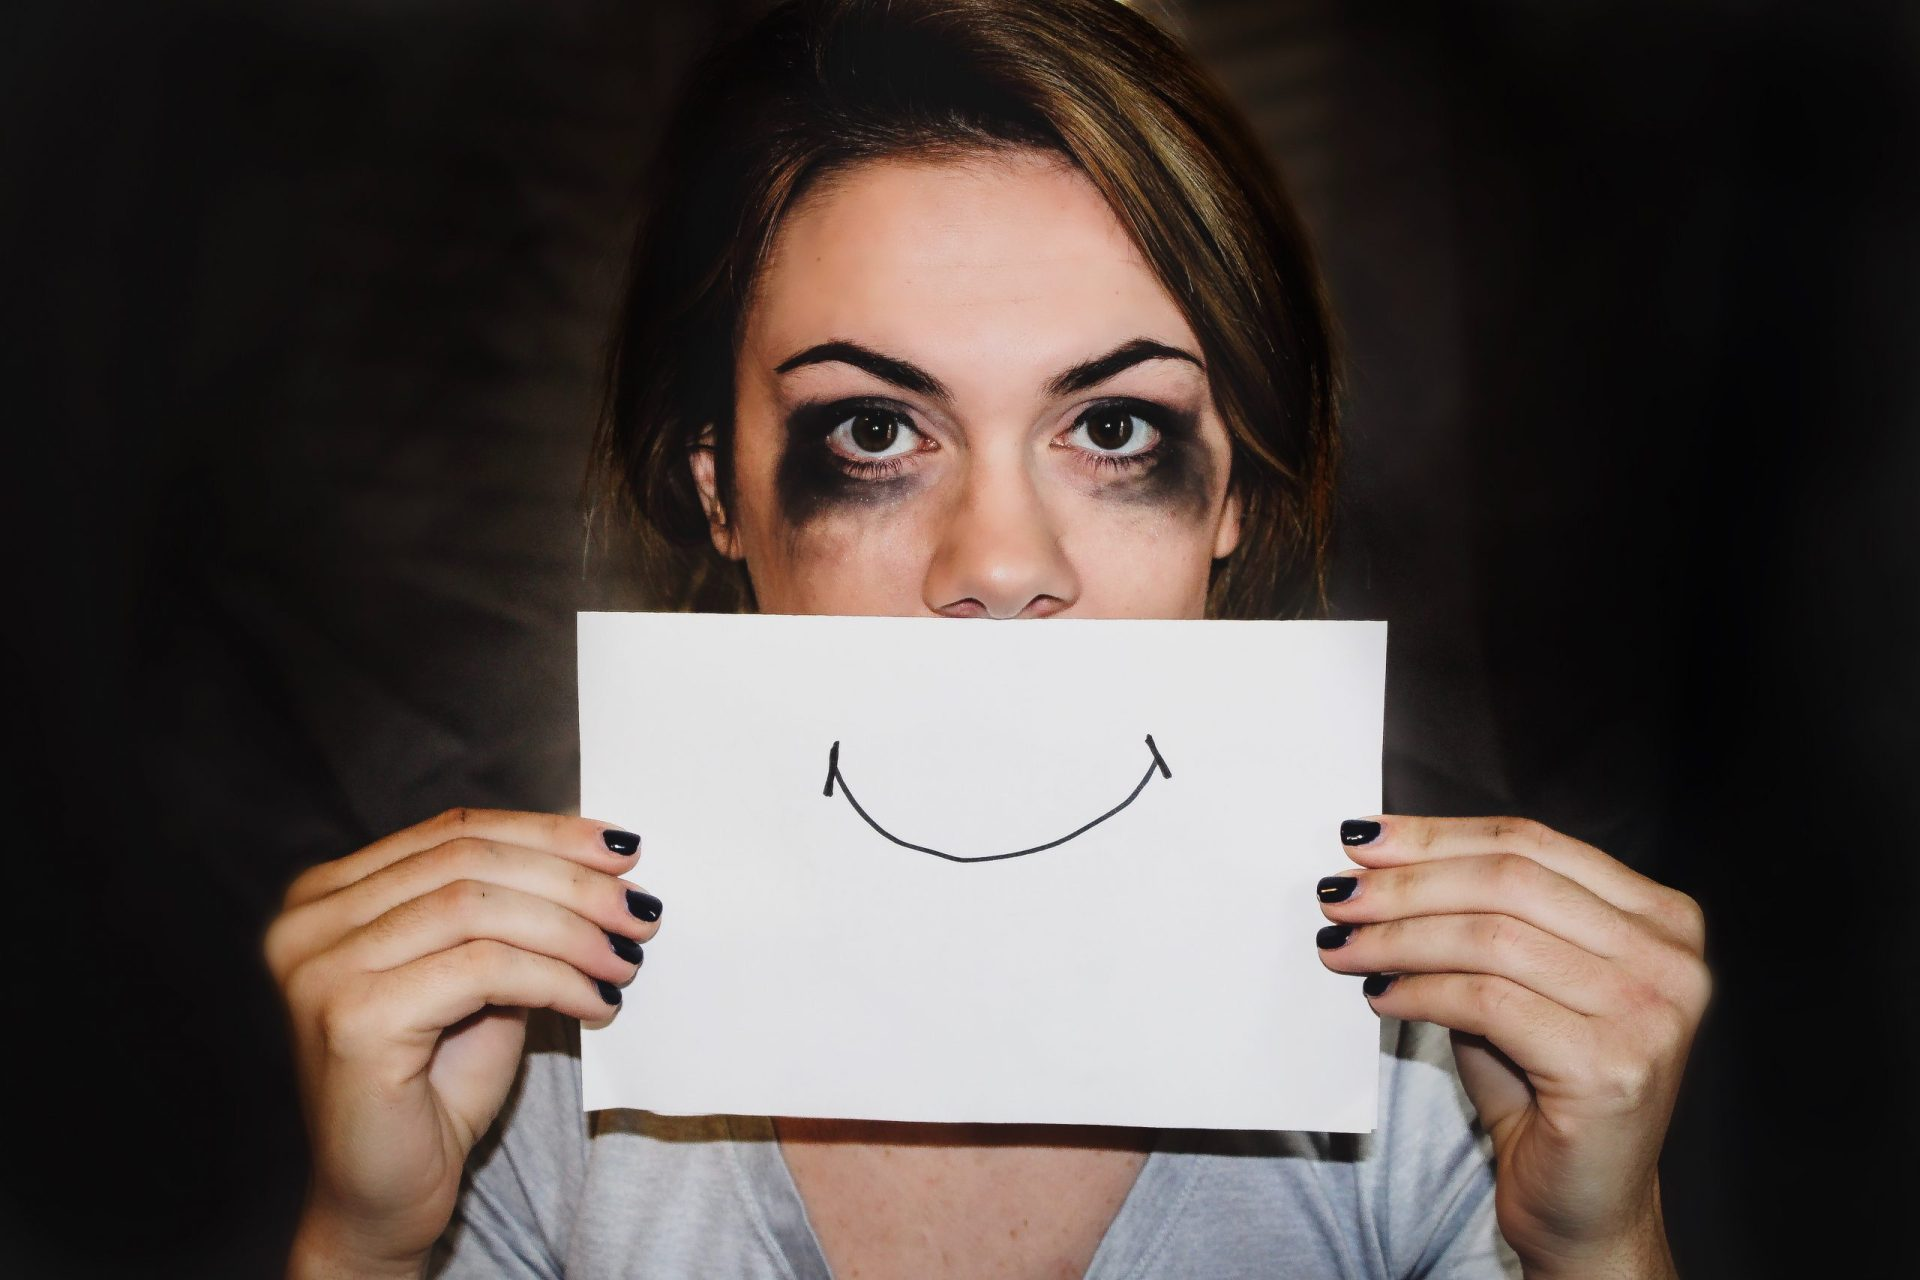 Depression counseling. Upset woman with drawing of smile in front of her face.